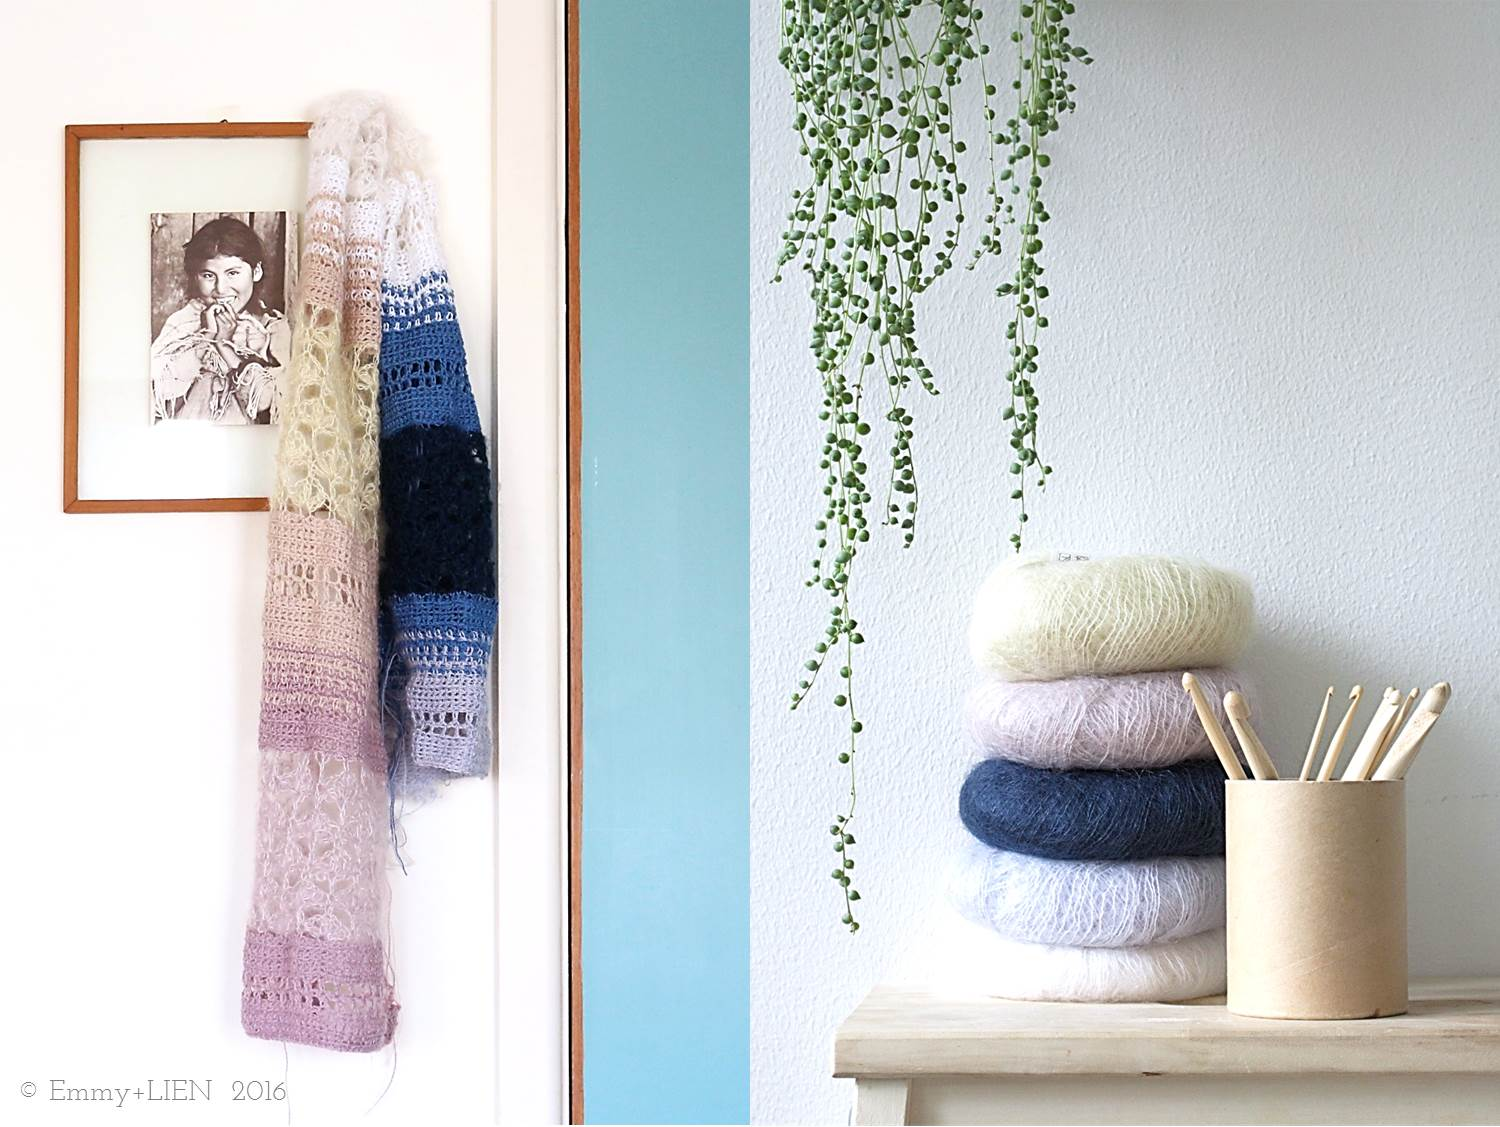 Floss Scarf by Eline Alcocer for Crochet Now issue 9